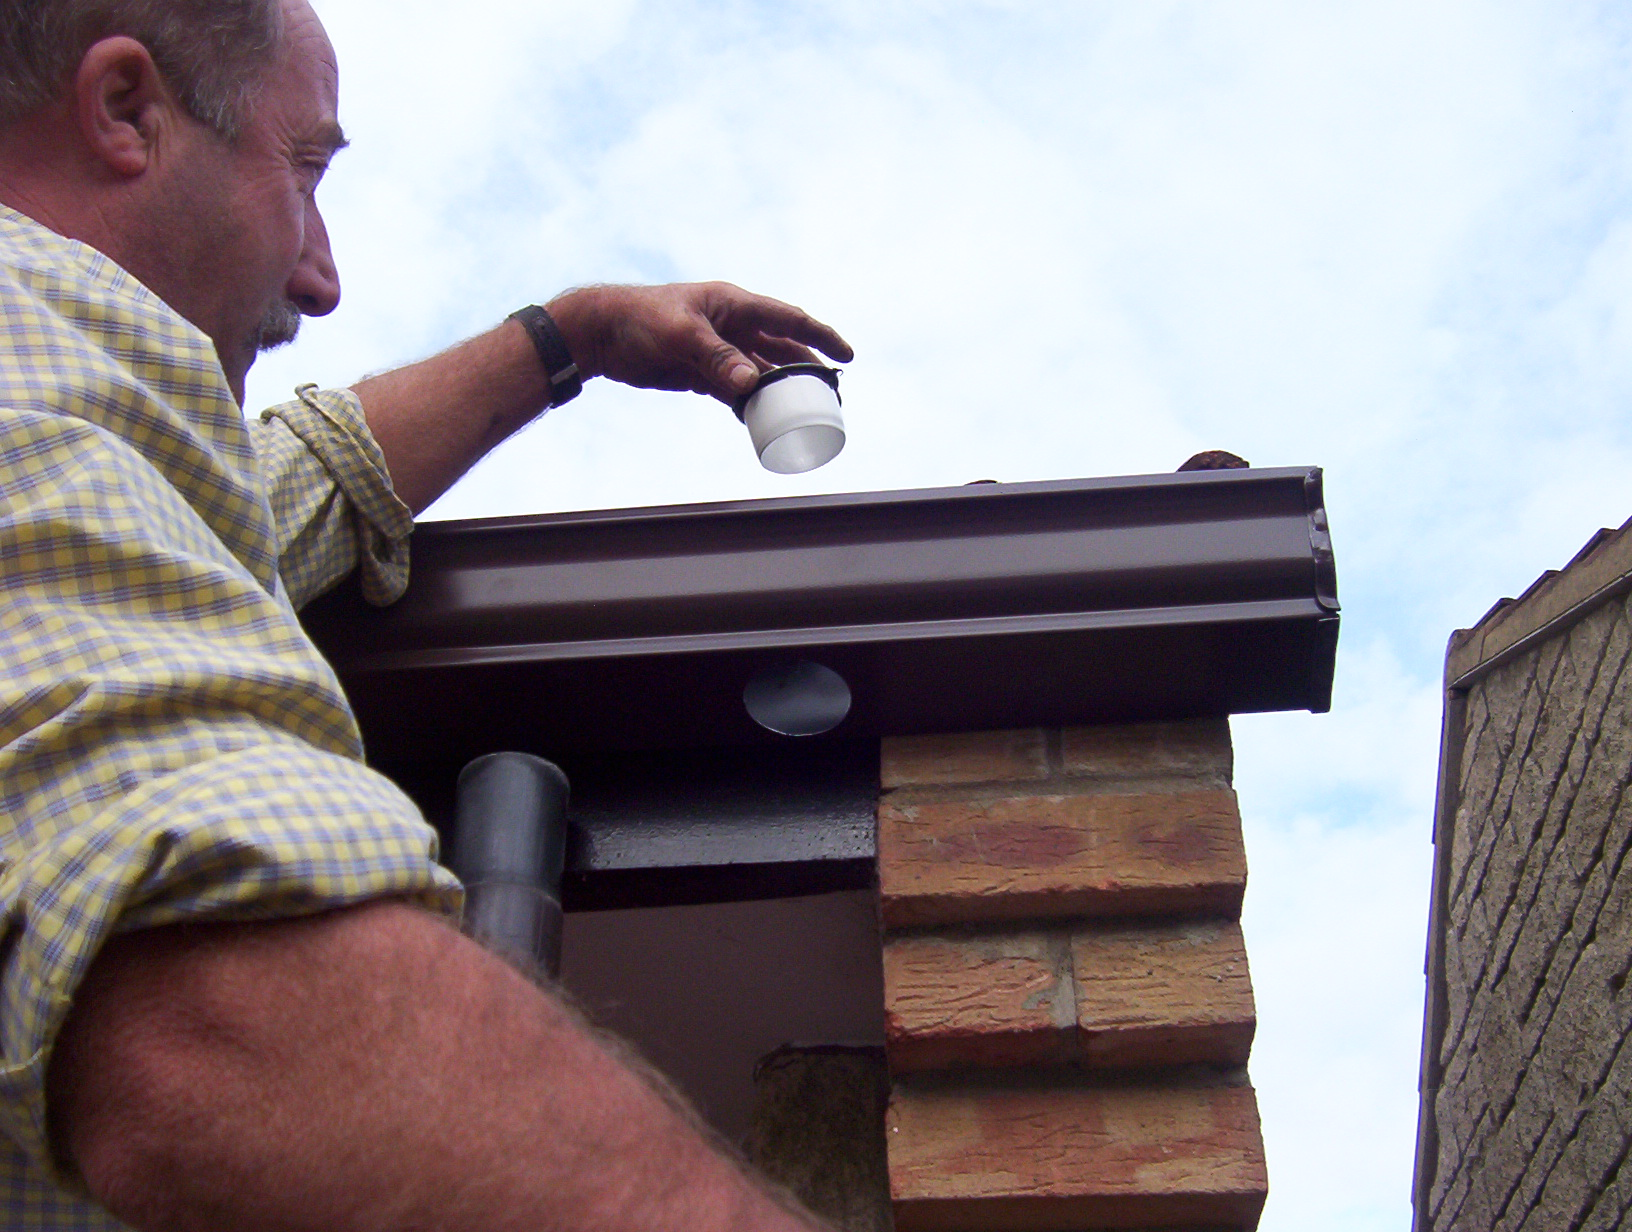 Testing the guttering